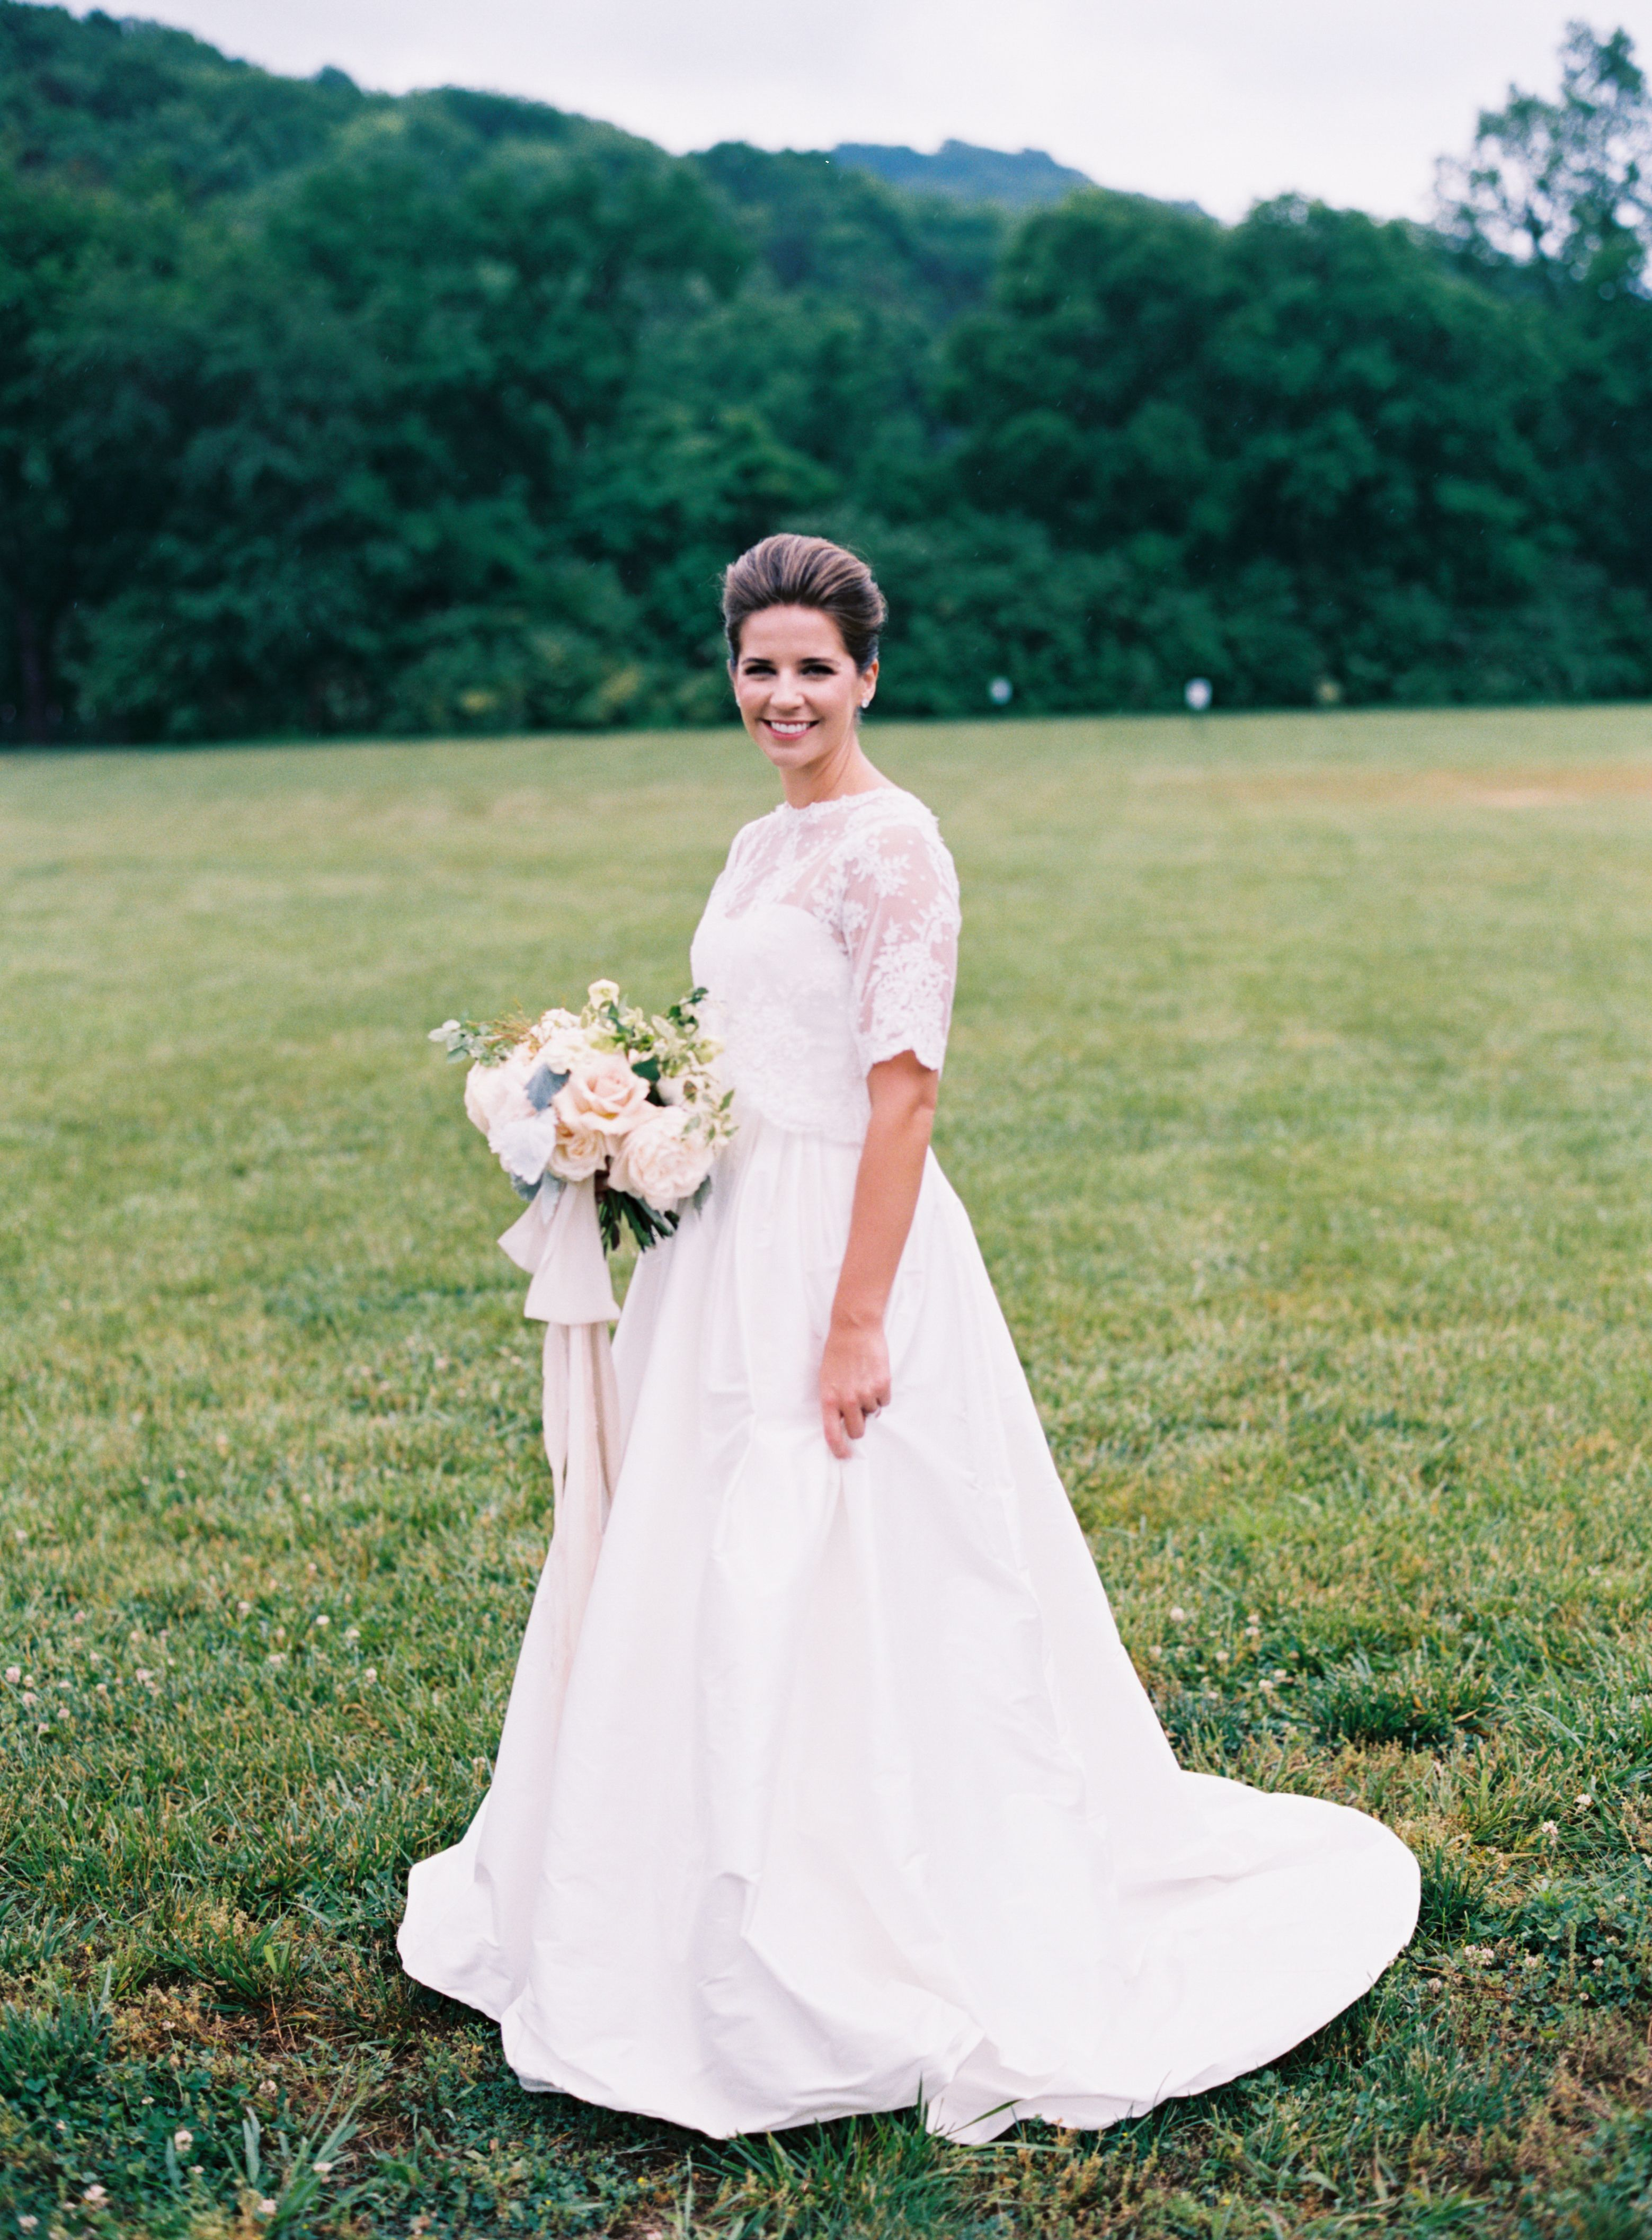 Pin by Fontanel Nashville on Wedding Gowns   Pinterest   Gowns and ...